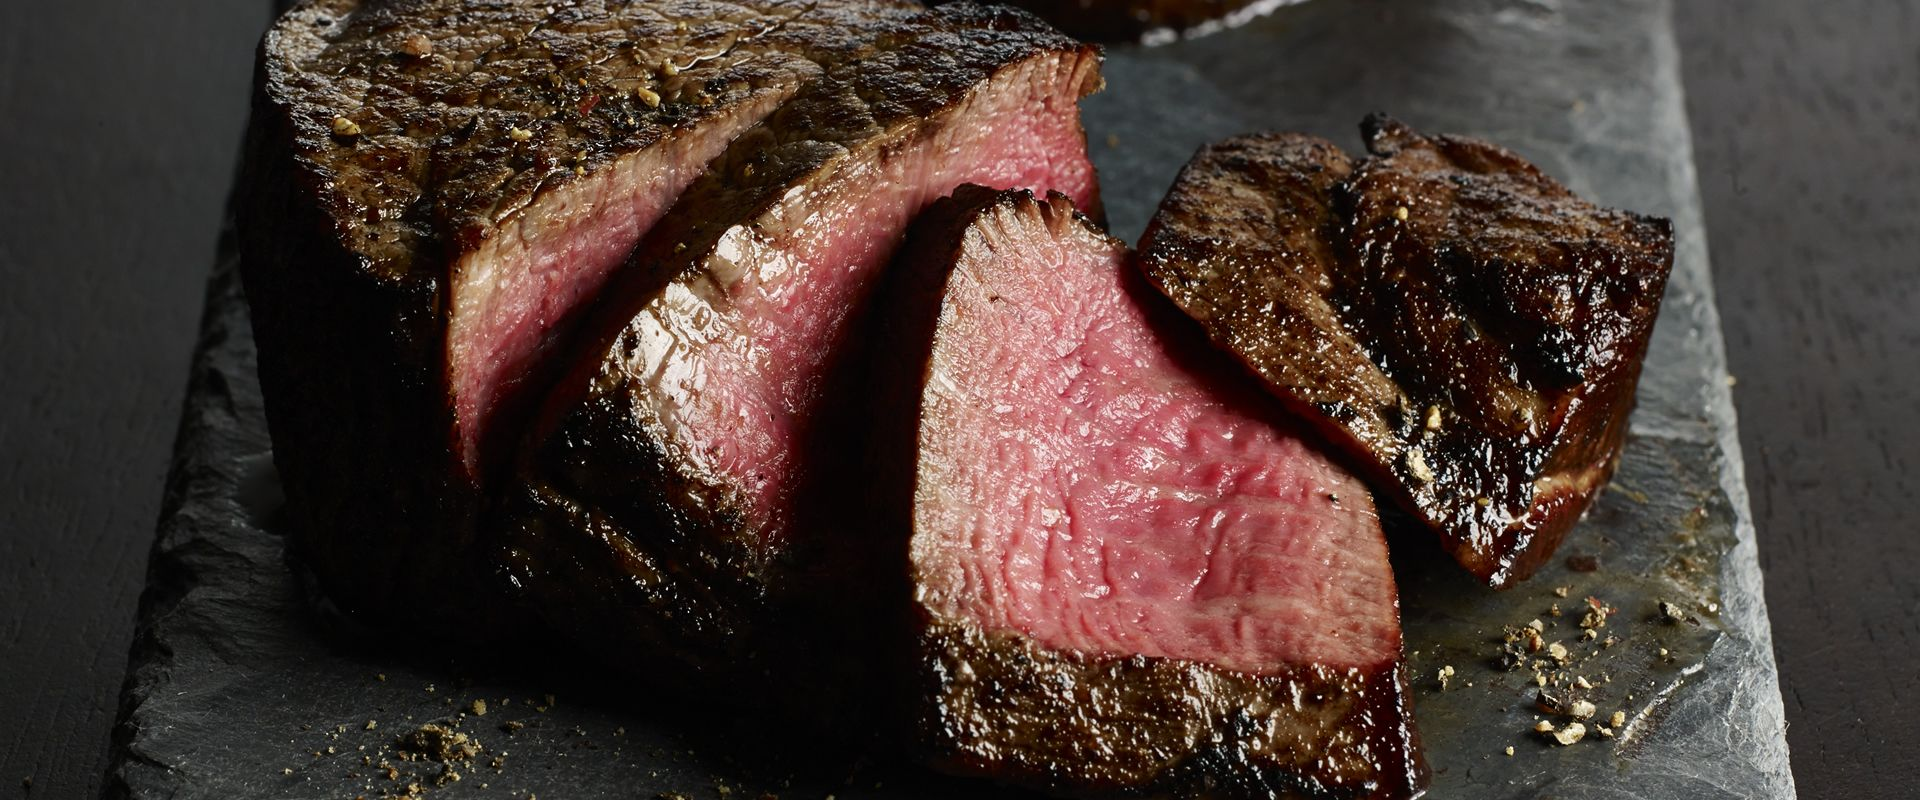 Lobels mail order steaks 16 Mail Order Steak Companies That Do Meat Right